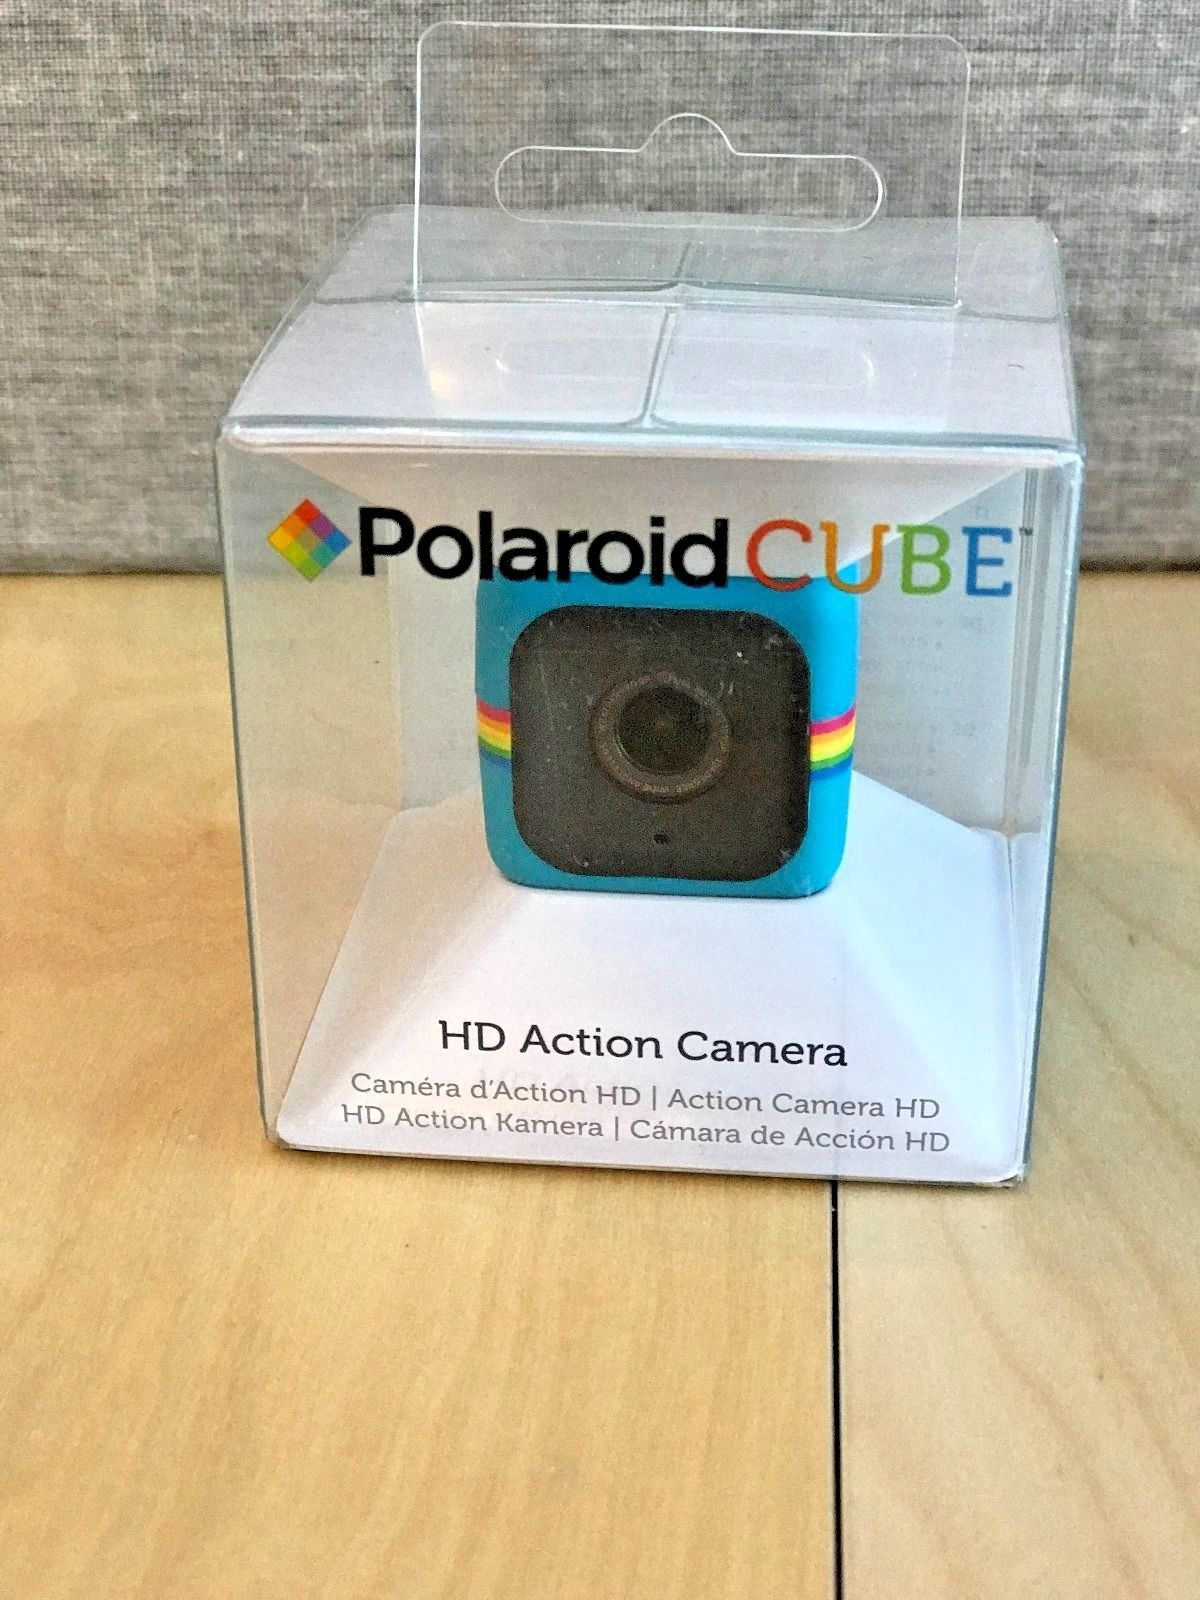 Polaroid Cube HD 1080p Lifestyle Action Video Camera/Blue New (w/ LOT of accs) https://t.co/C0khMbHKaS https://t.co/MPVXuh3PgW